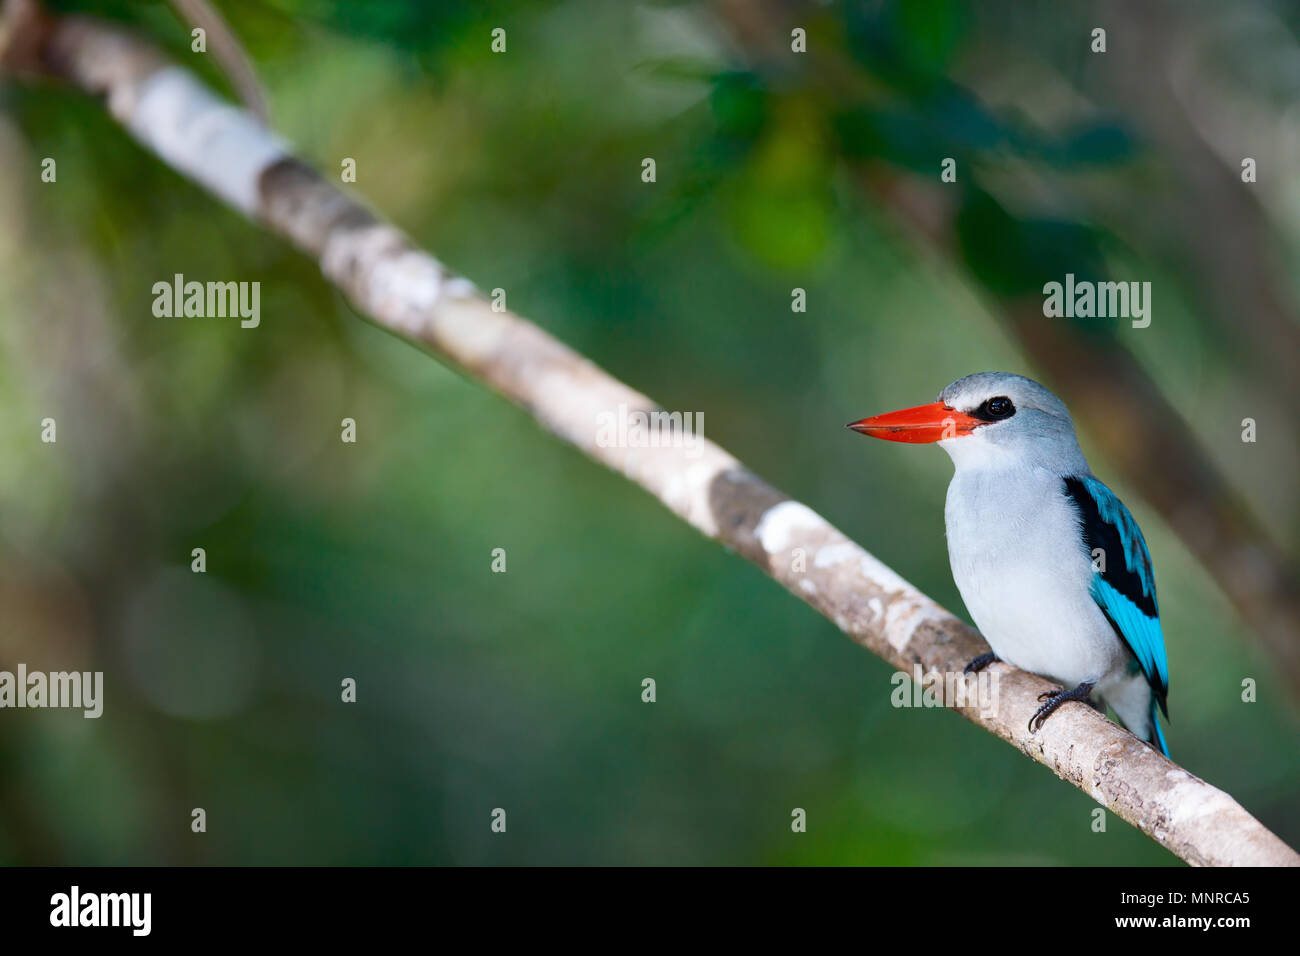 Kingfisher in Mozambique,  Africa - Stock Image